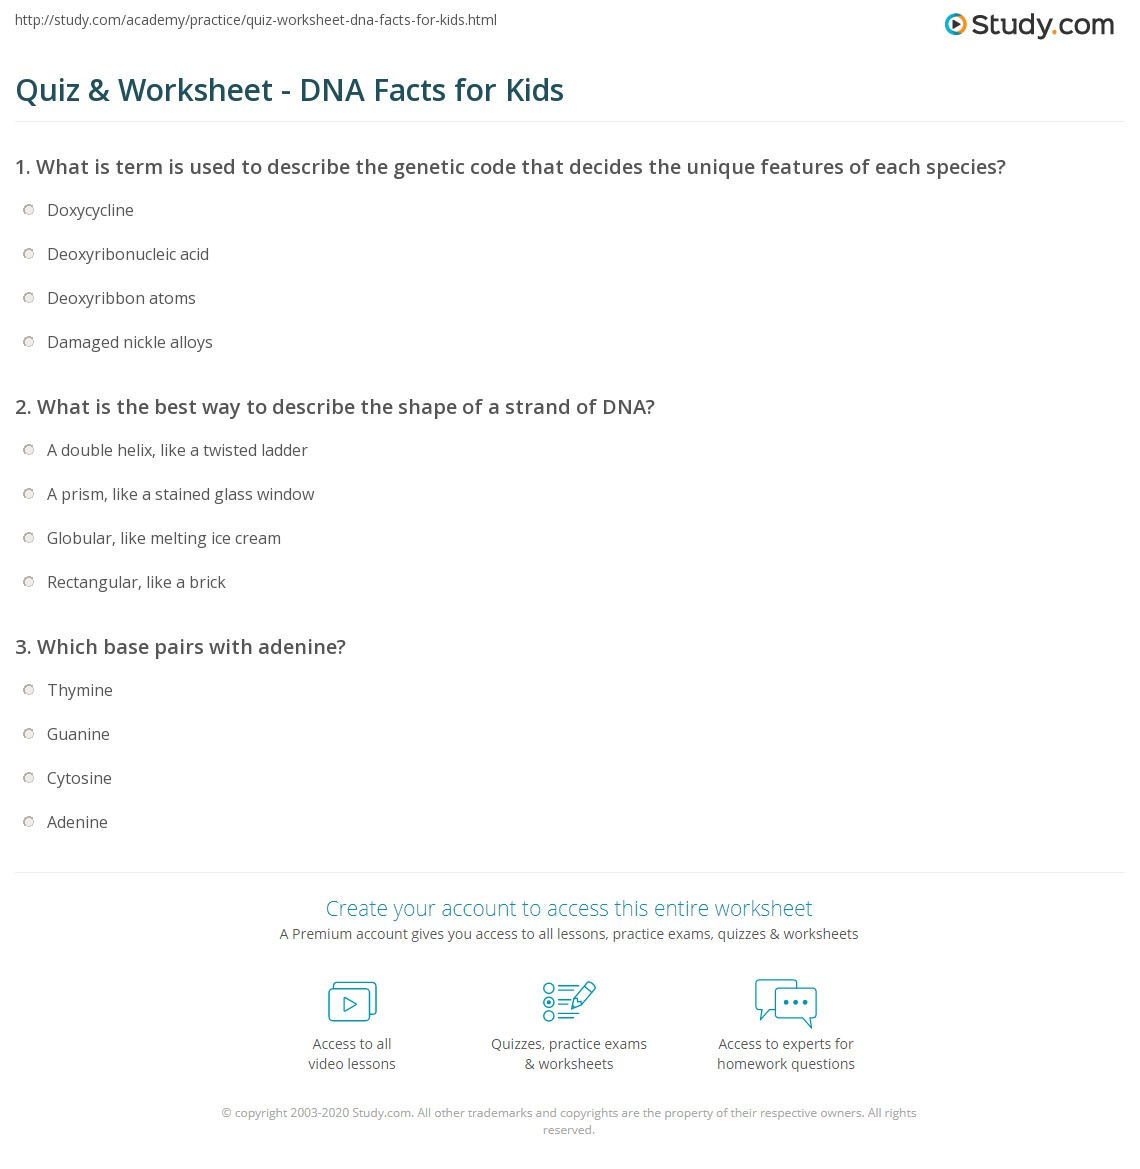 Quiz & Worksheet DNA Facts for Kids